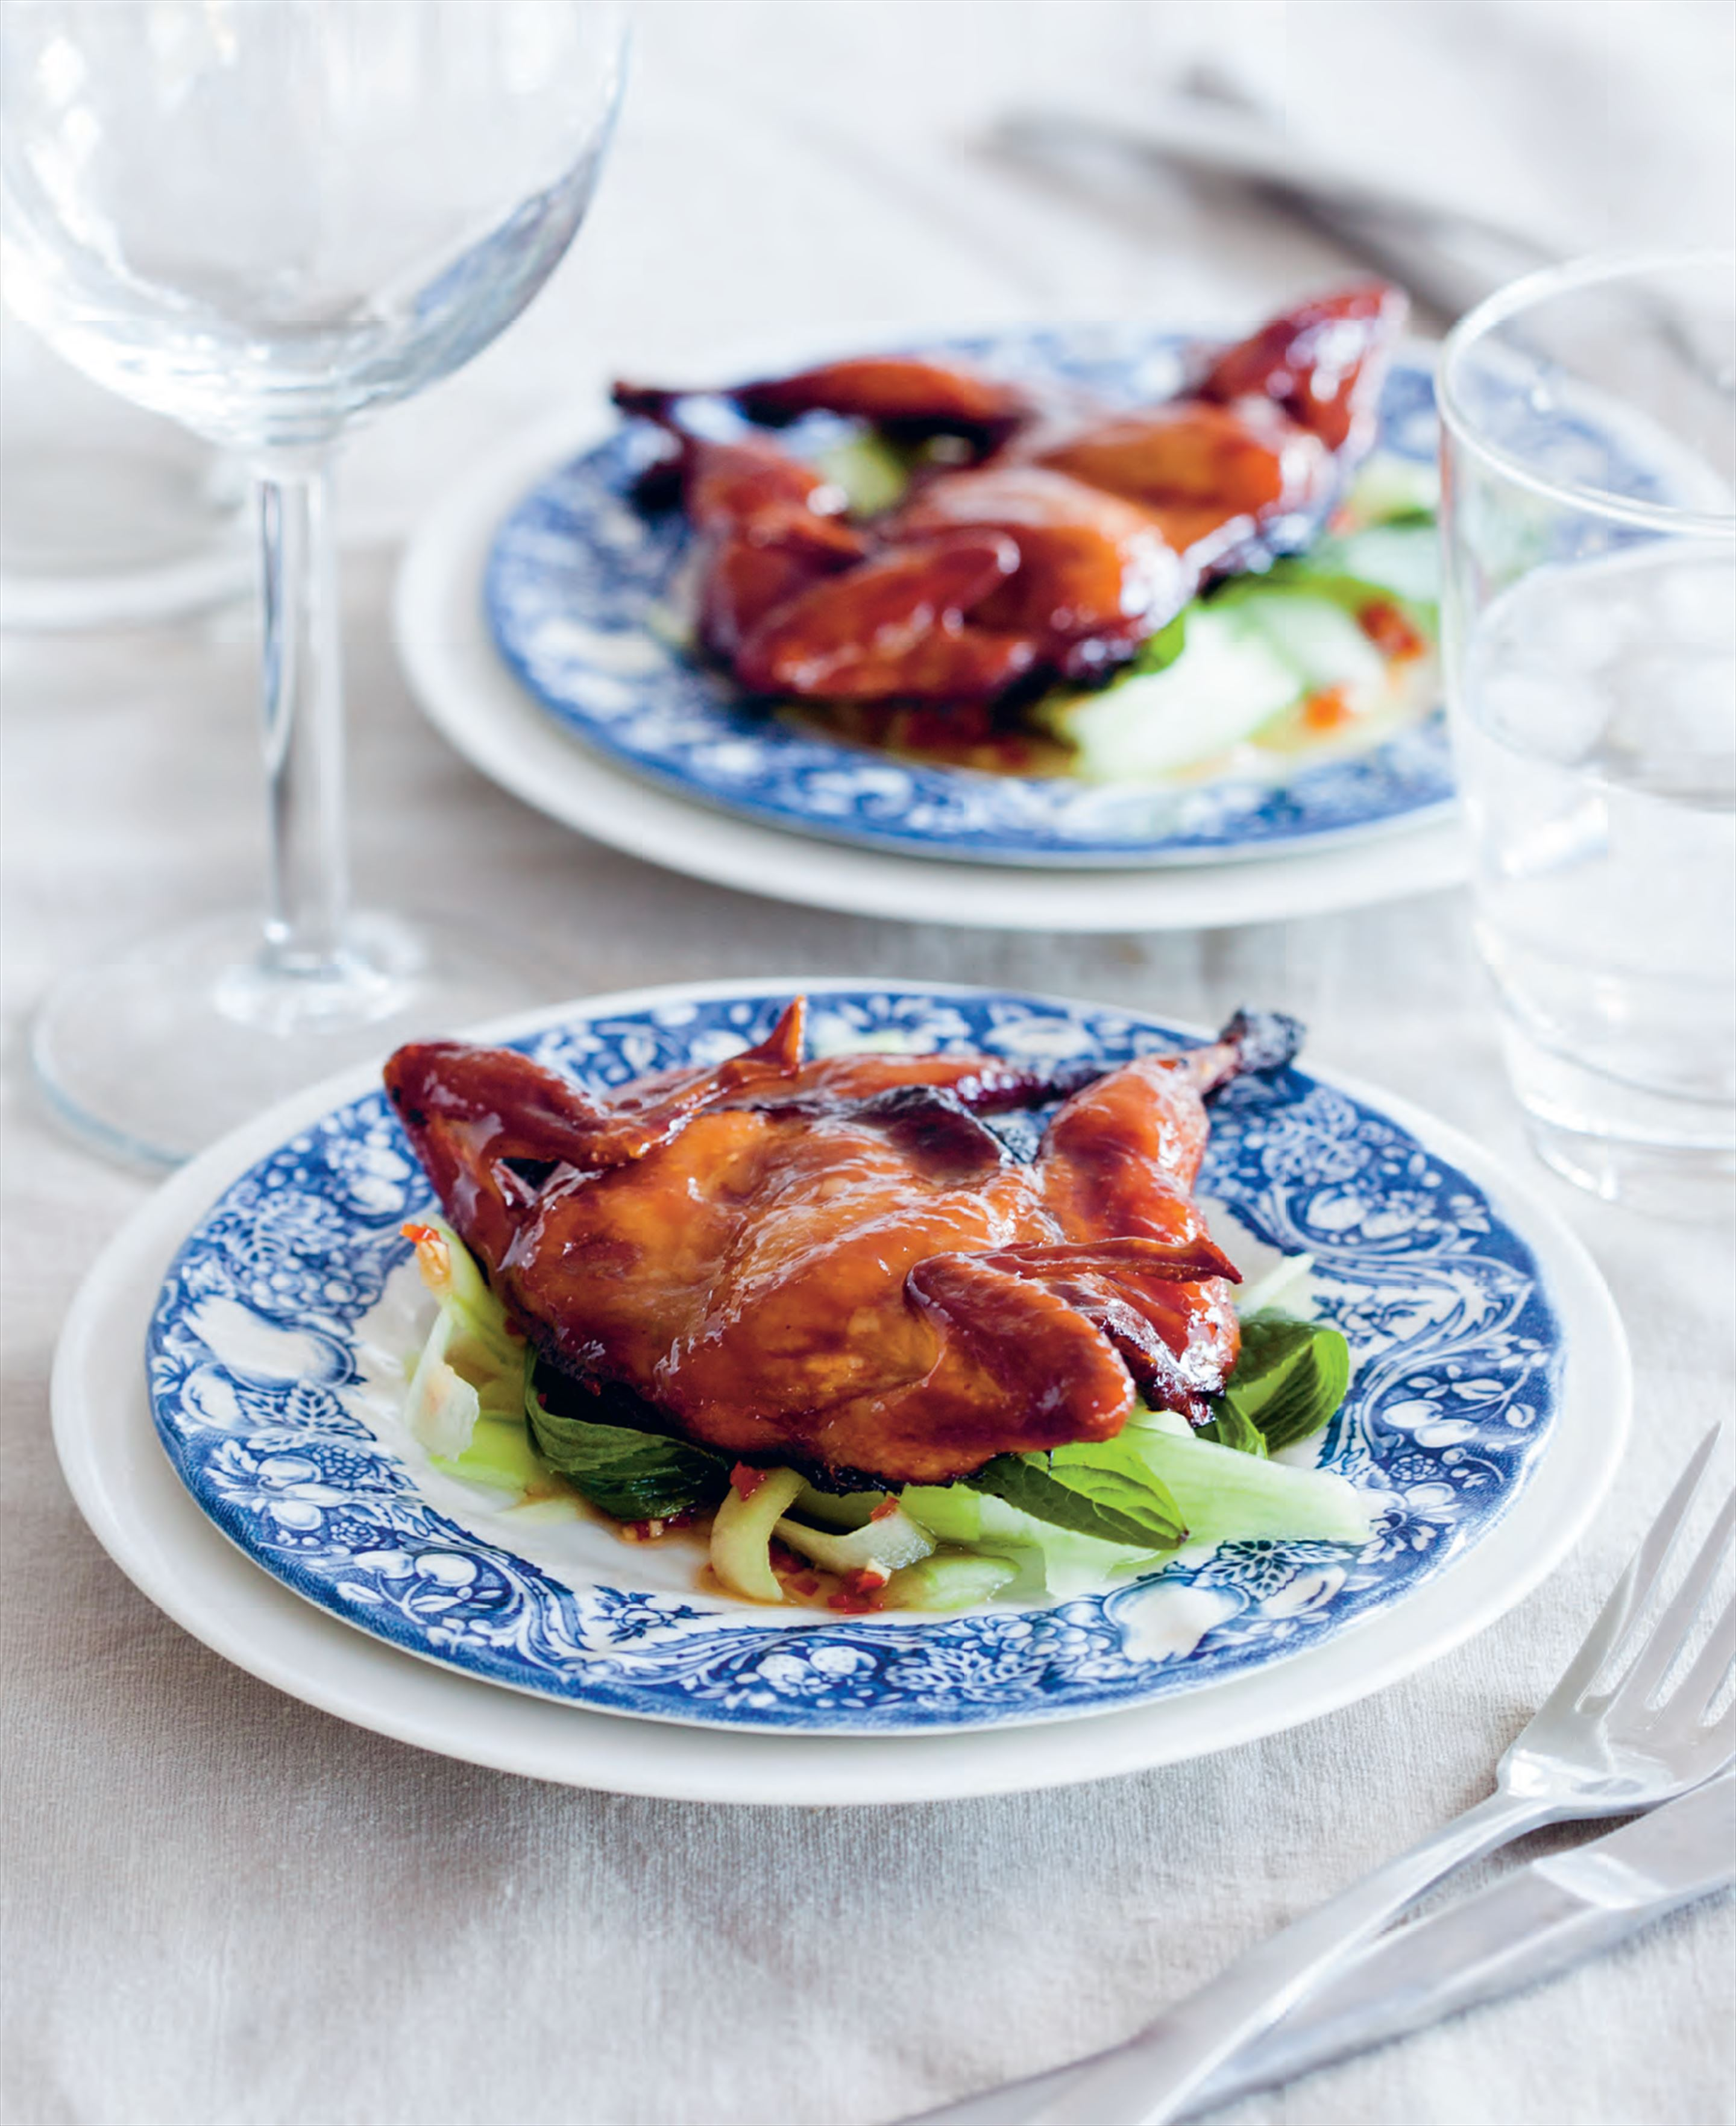 Barbecued spiced quail